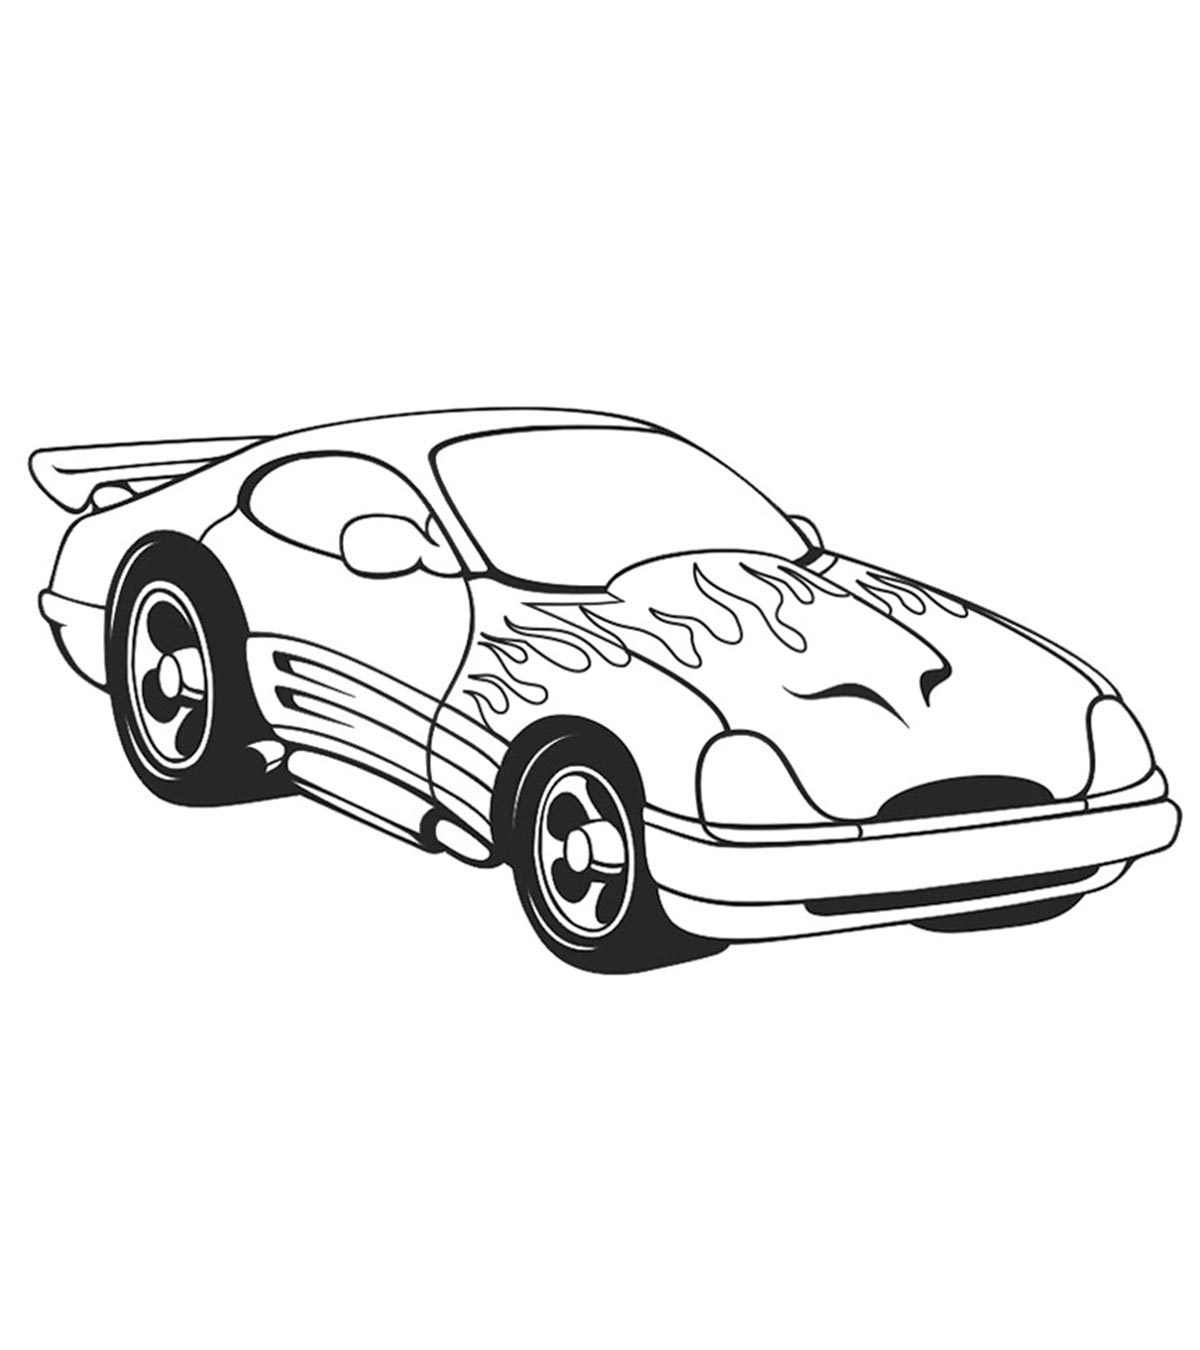 car pictures to colour in police car coloring pages to download and print for free car to pictures colour in